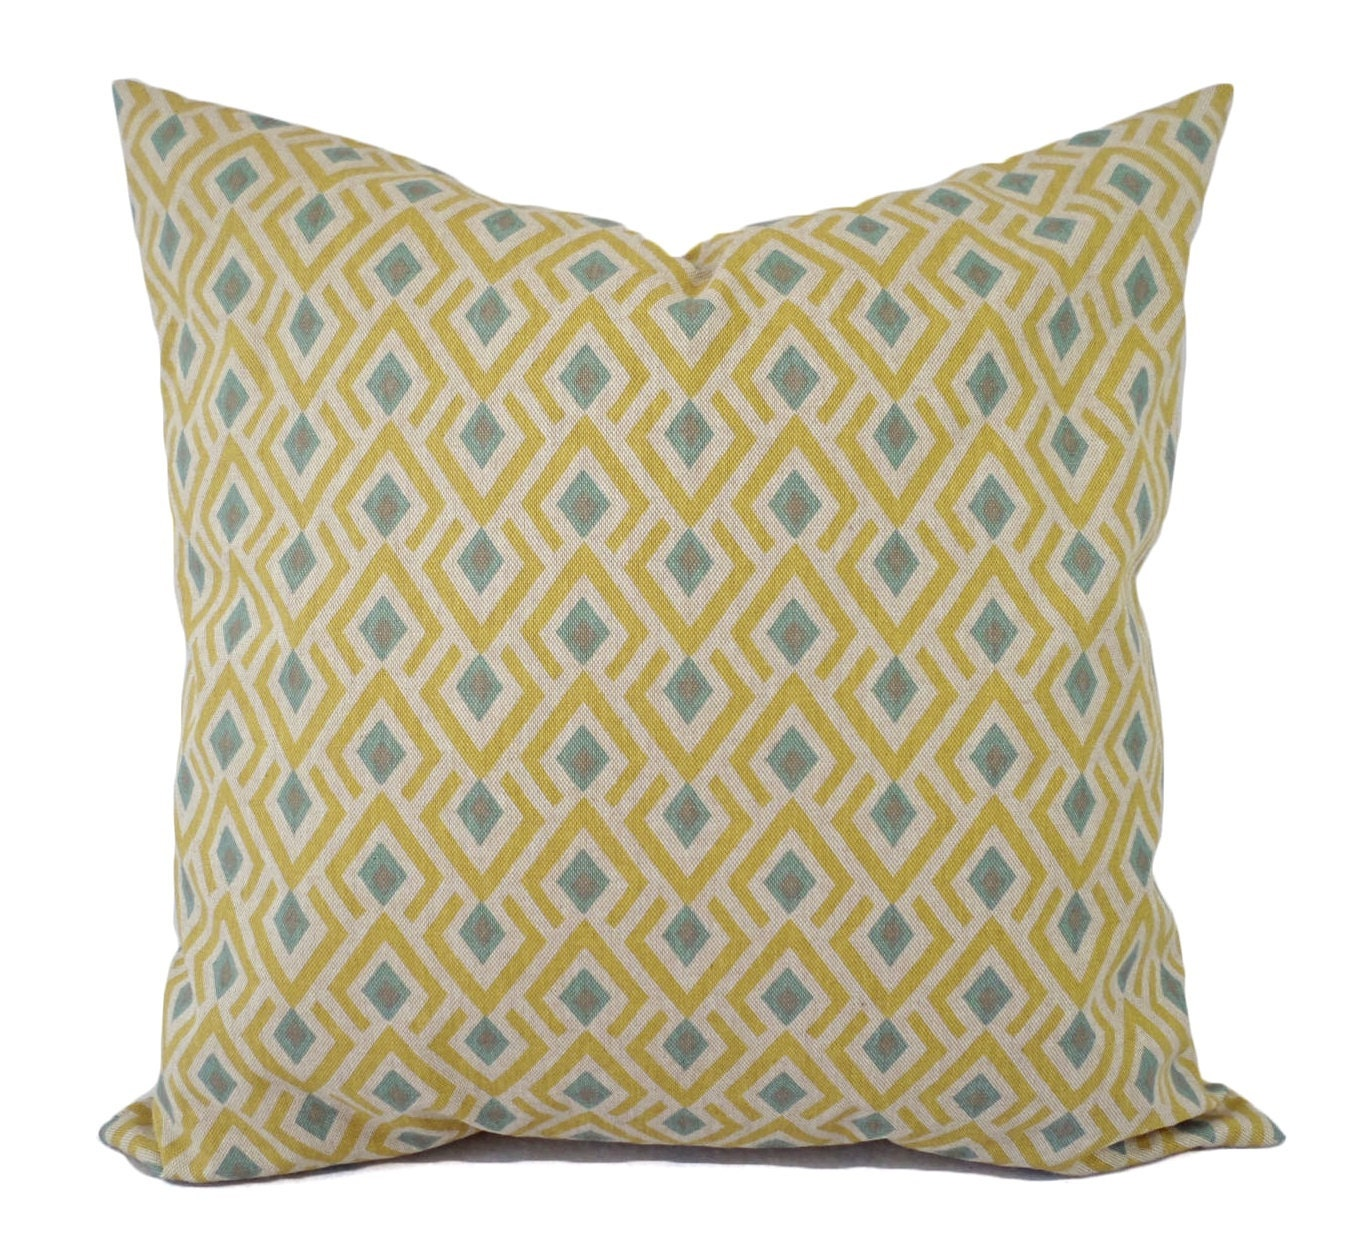 Yellow And Blue Decorative Pillow Covers Two Geometric Throw